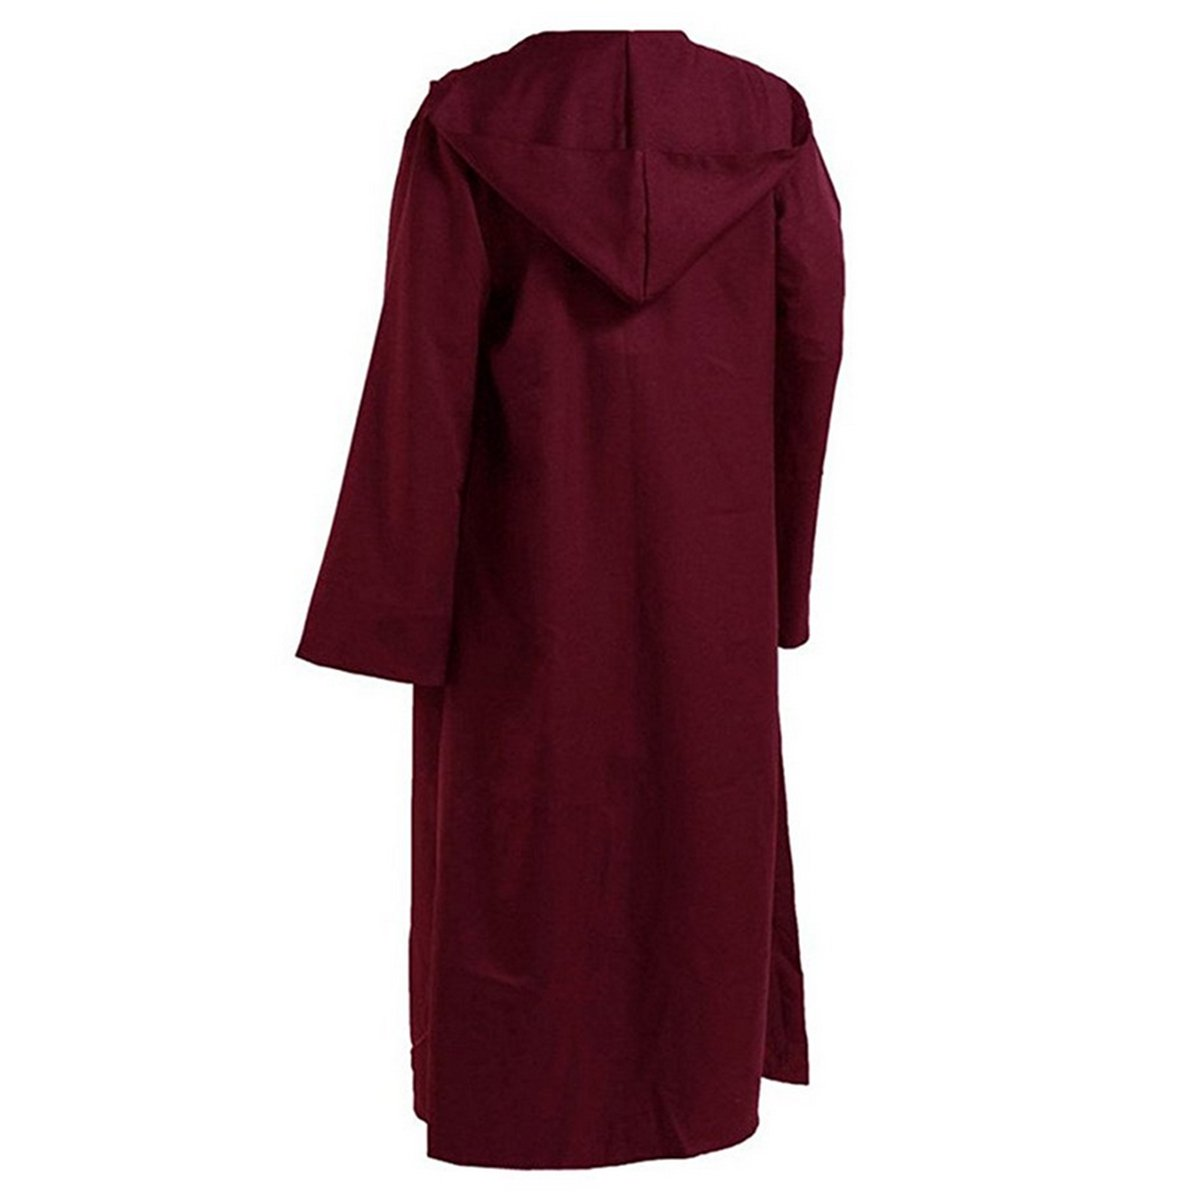 WESTLINK Hooded Robe Cloak Knight Cosplay Costume Cape - New Version - Bigger Cape (Double Cloth) with Strings CEOAMZUSMCUS_MC-991